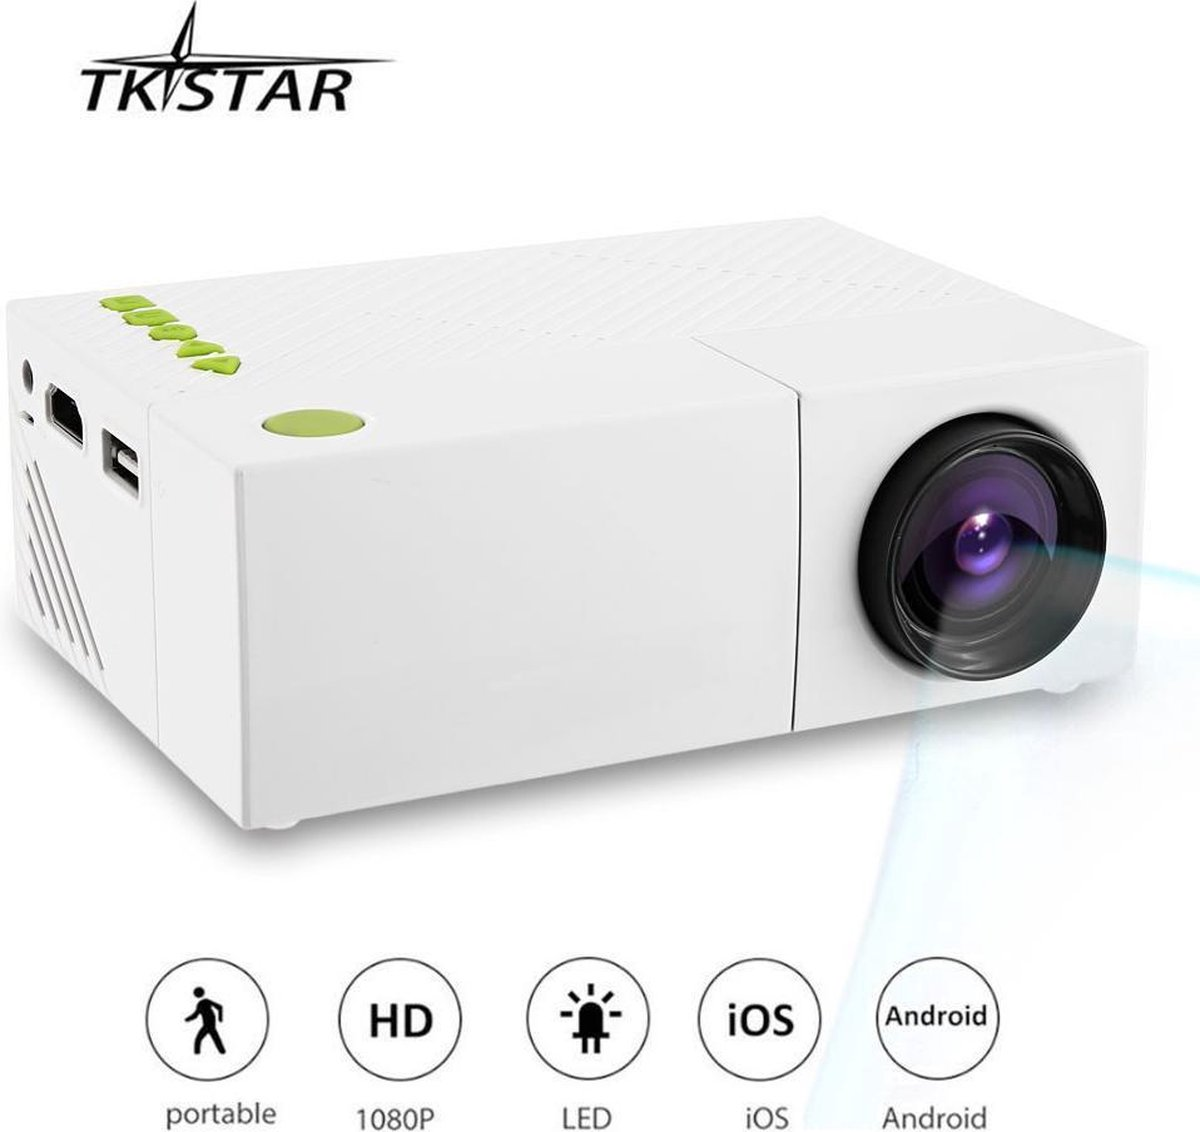 TKSTAR Draagbare LED Zak Projector Beamer Met Oplaadbare Batterij USB / AV / HDMI TV Box Ondersteunen Flash Drive PC Laptop Film Videogame